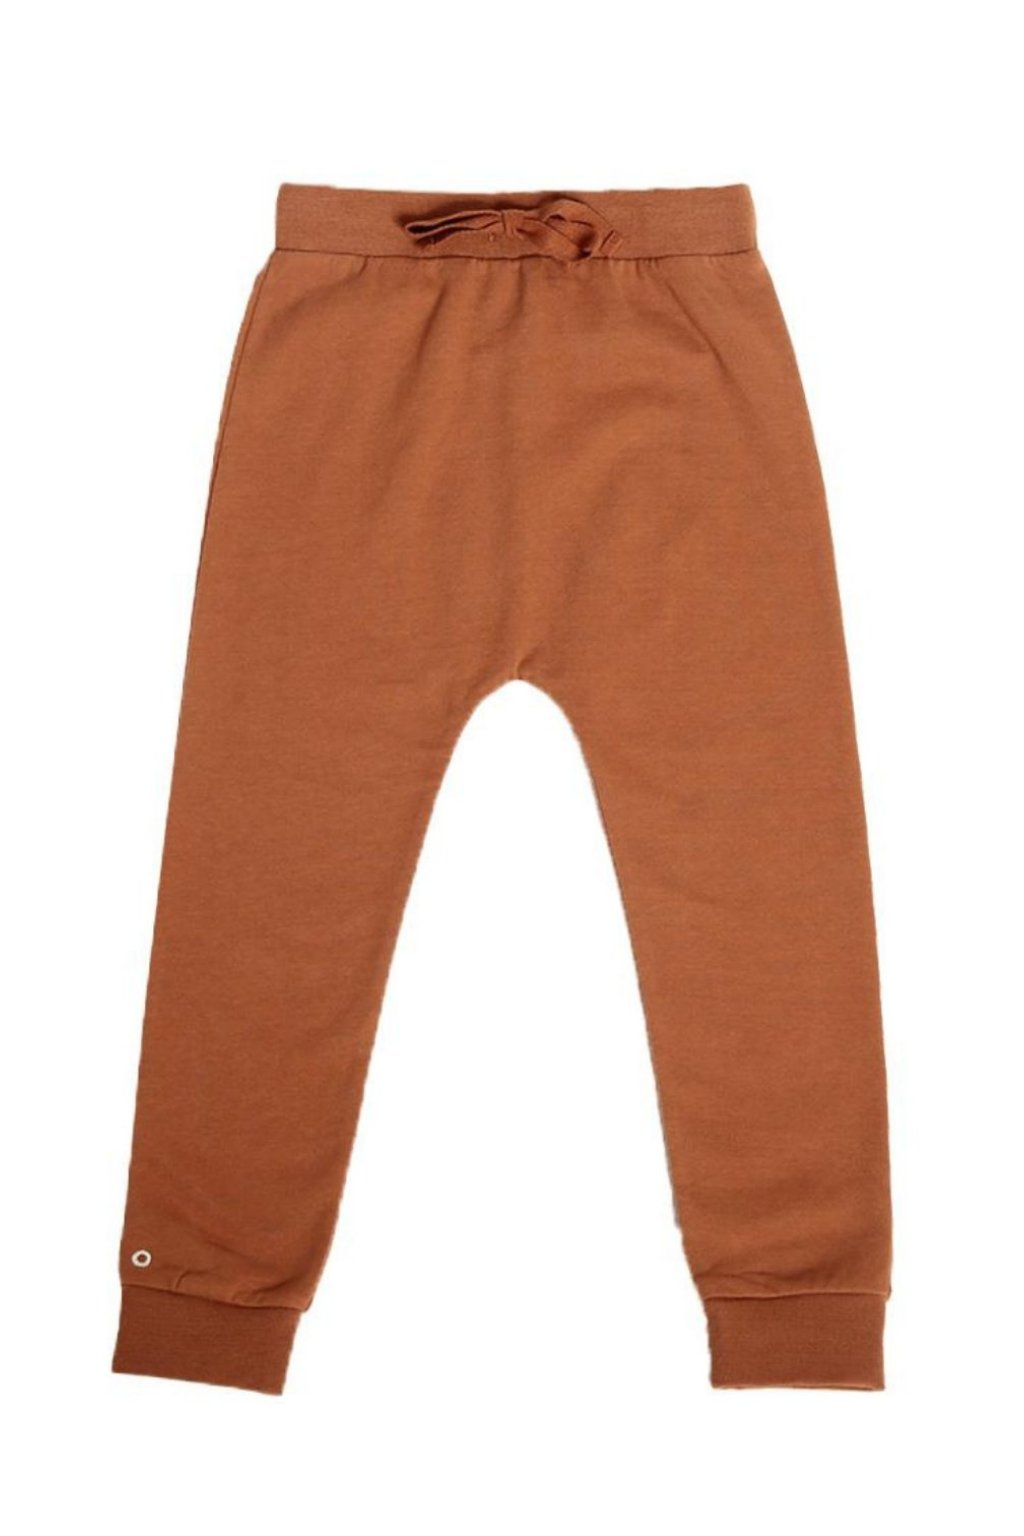 OH-SO EASY PANTS - CARAMEL COOKIE